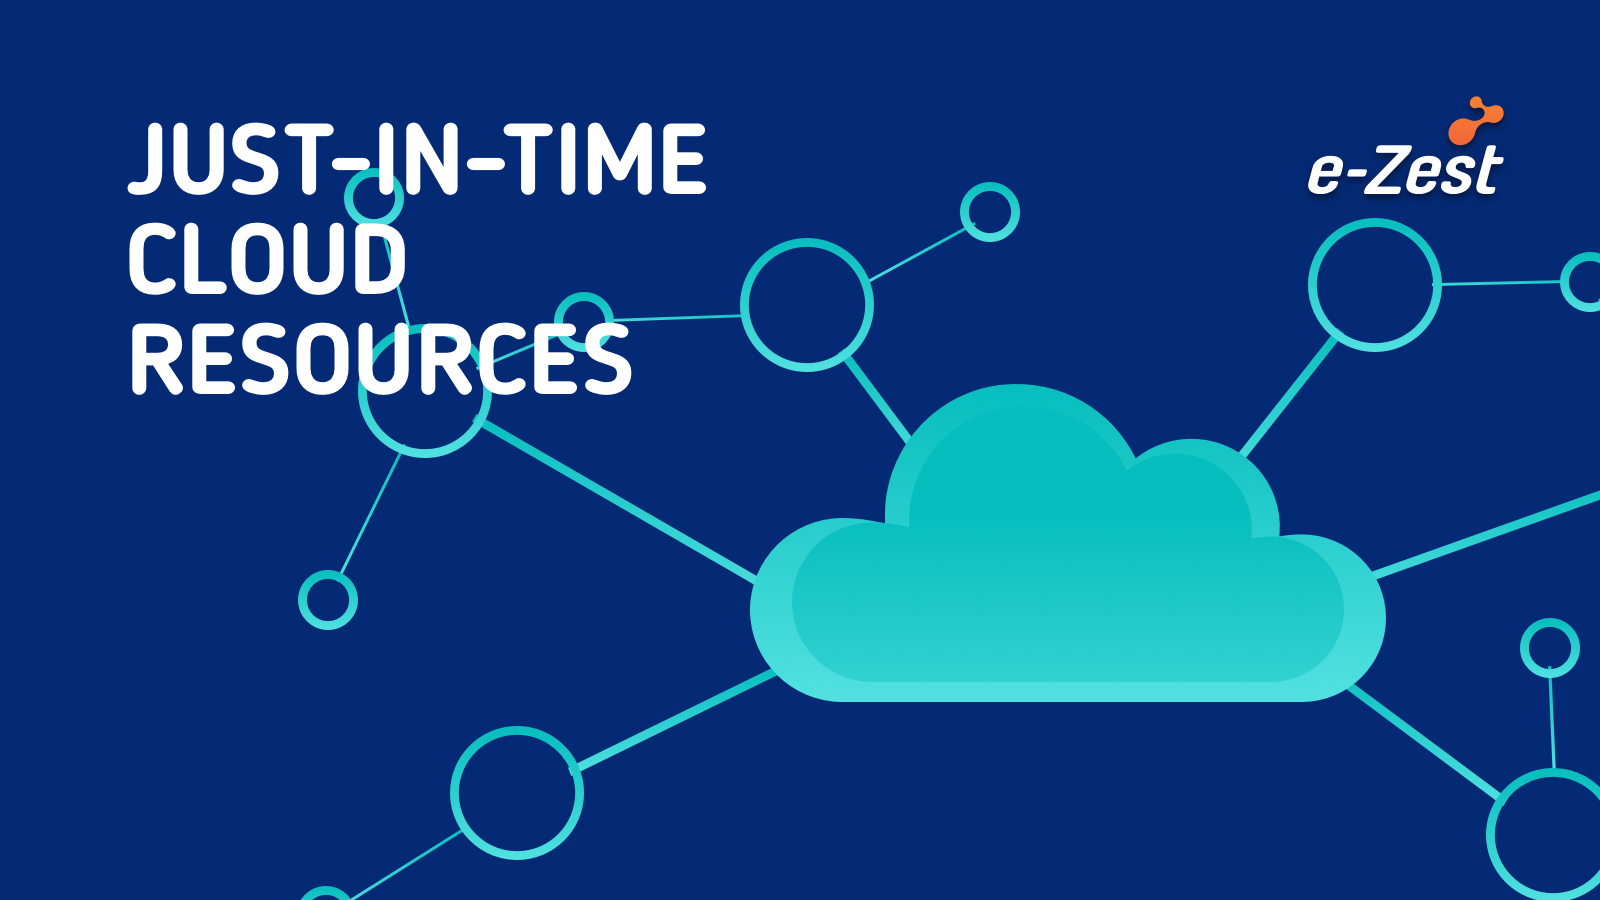 Just-in-Time Cloud Resources